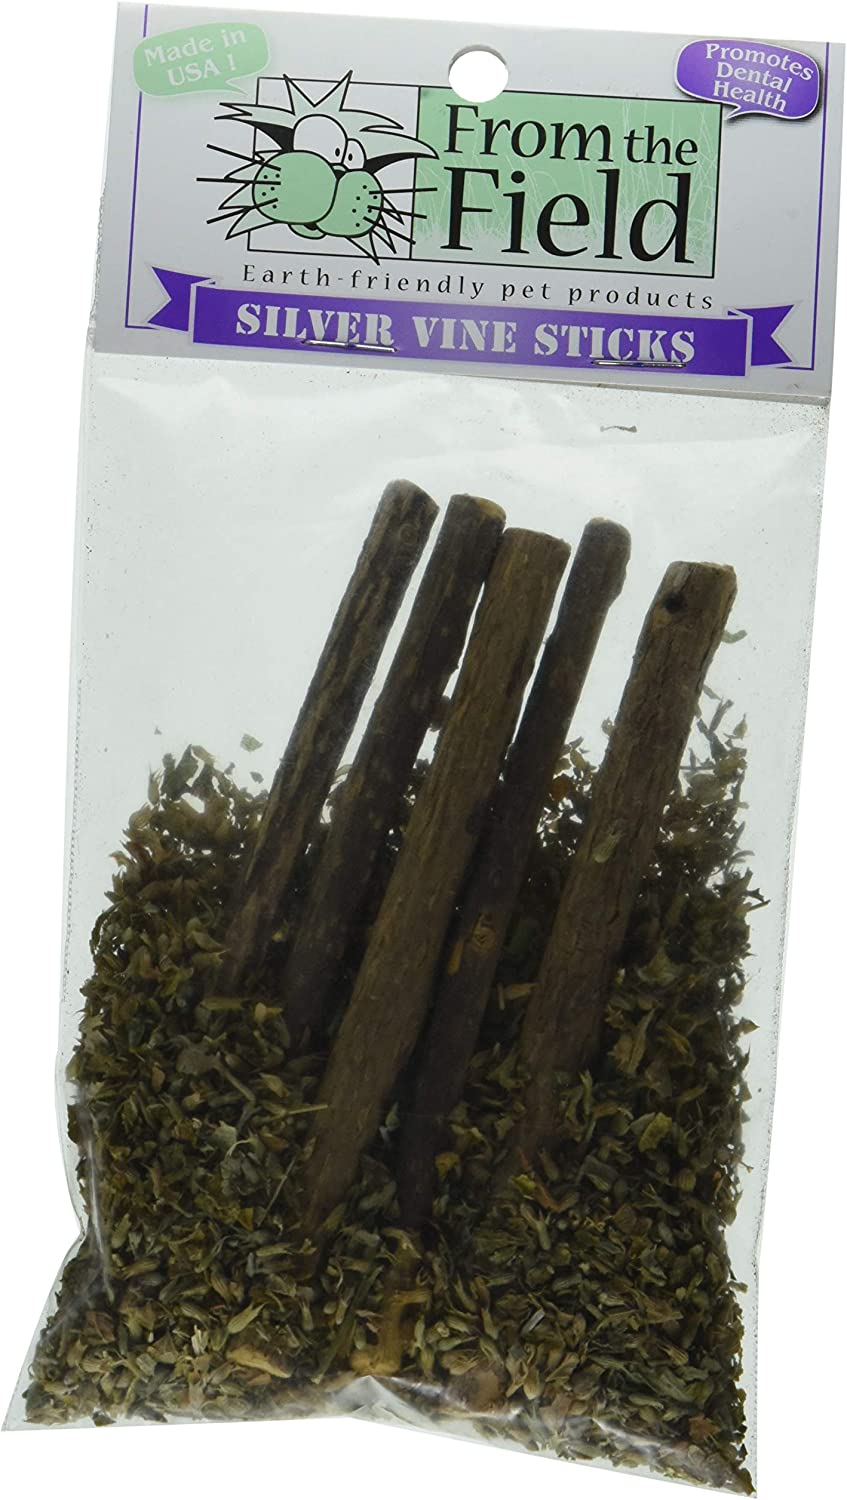 From The Field FFC333 San Antonio Mall Silver Vine Utlimate Cat famous Sticks Blend in T